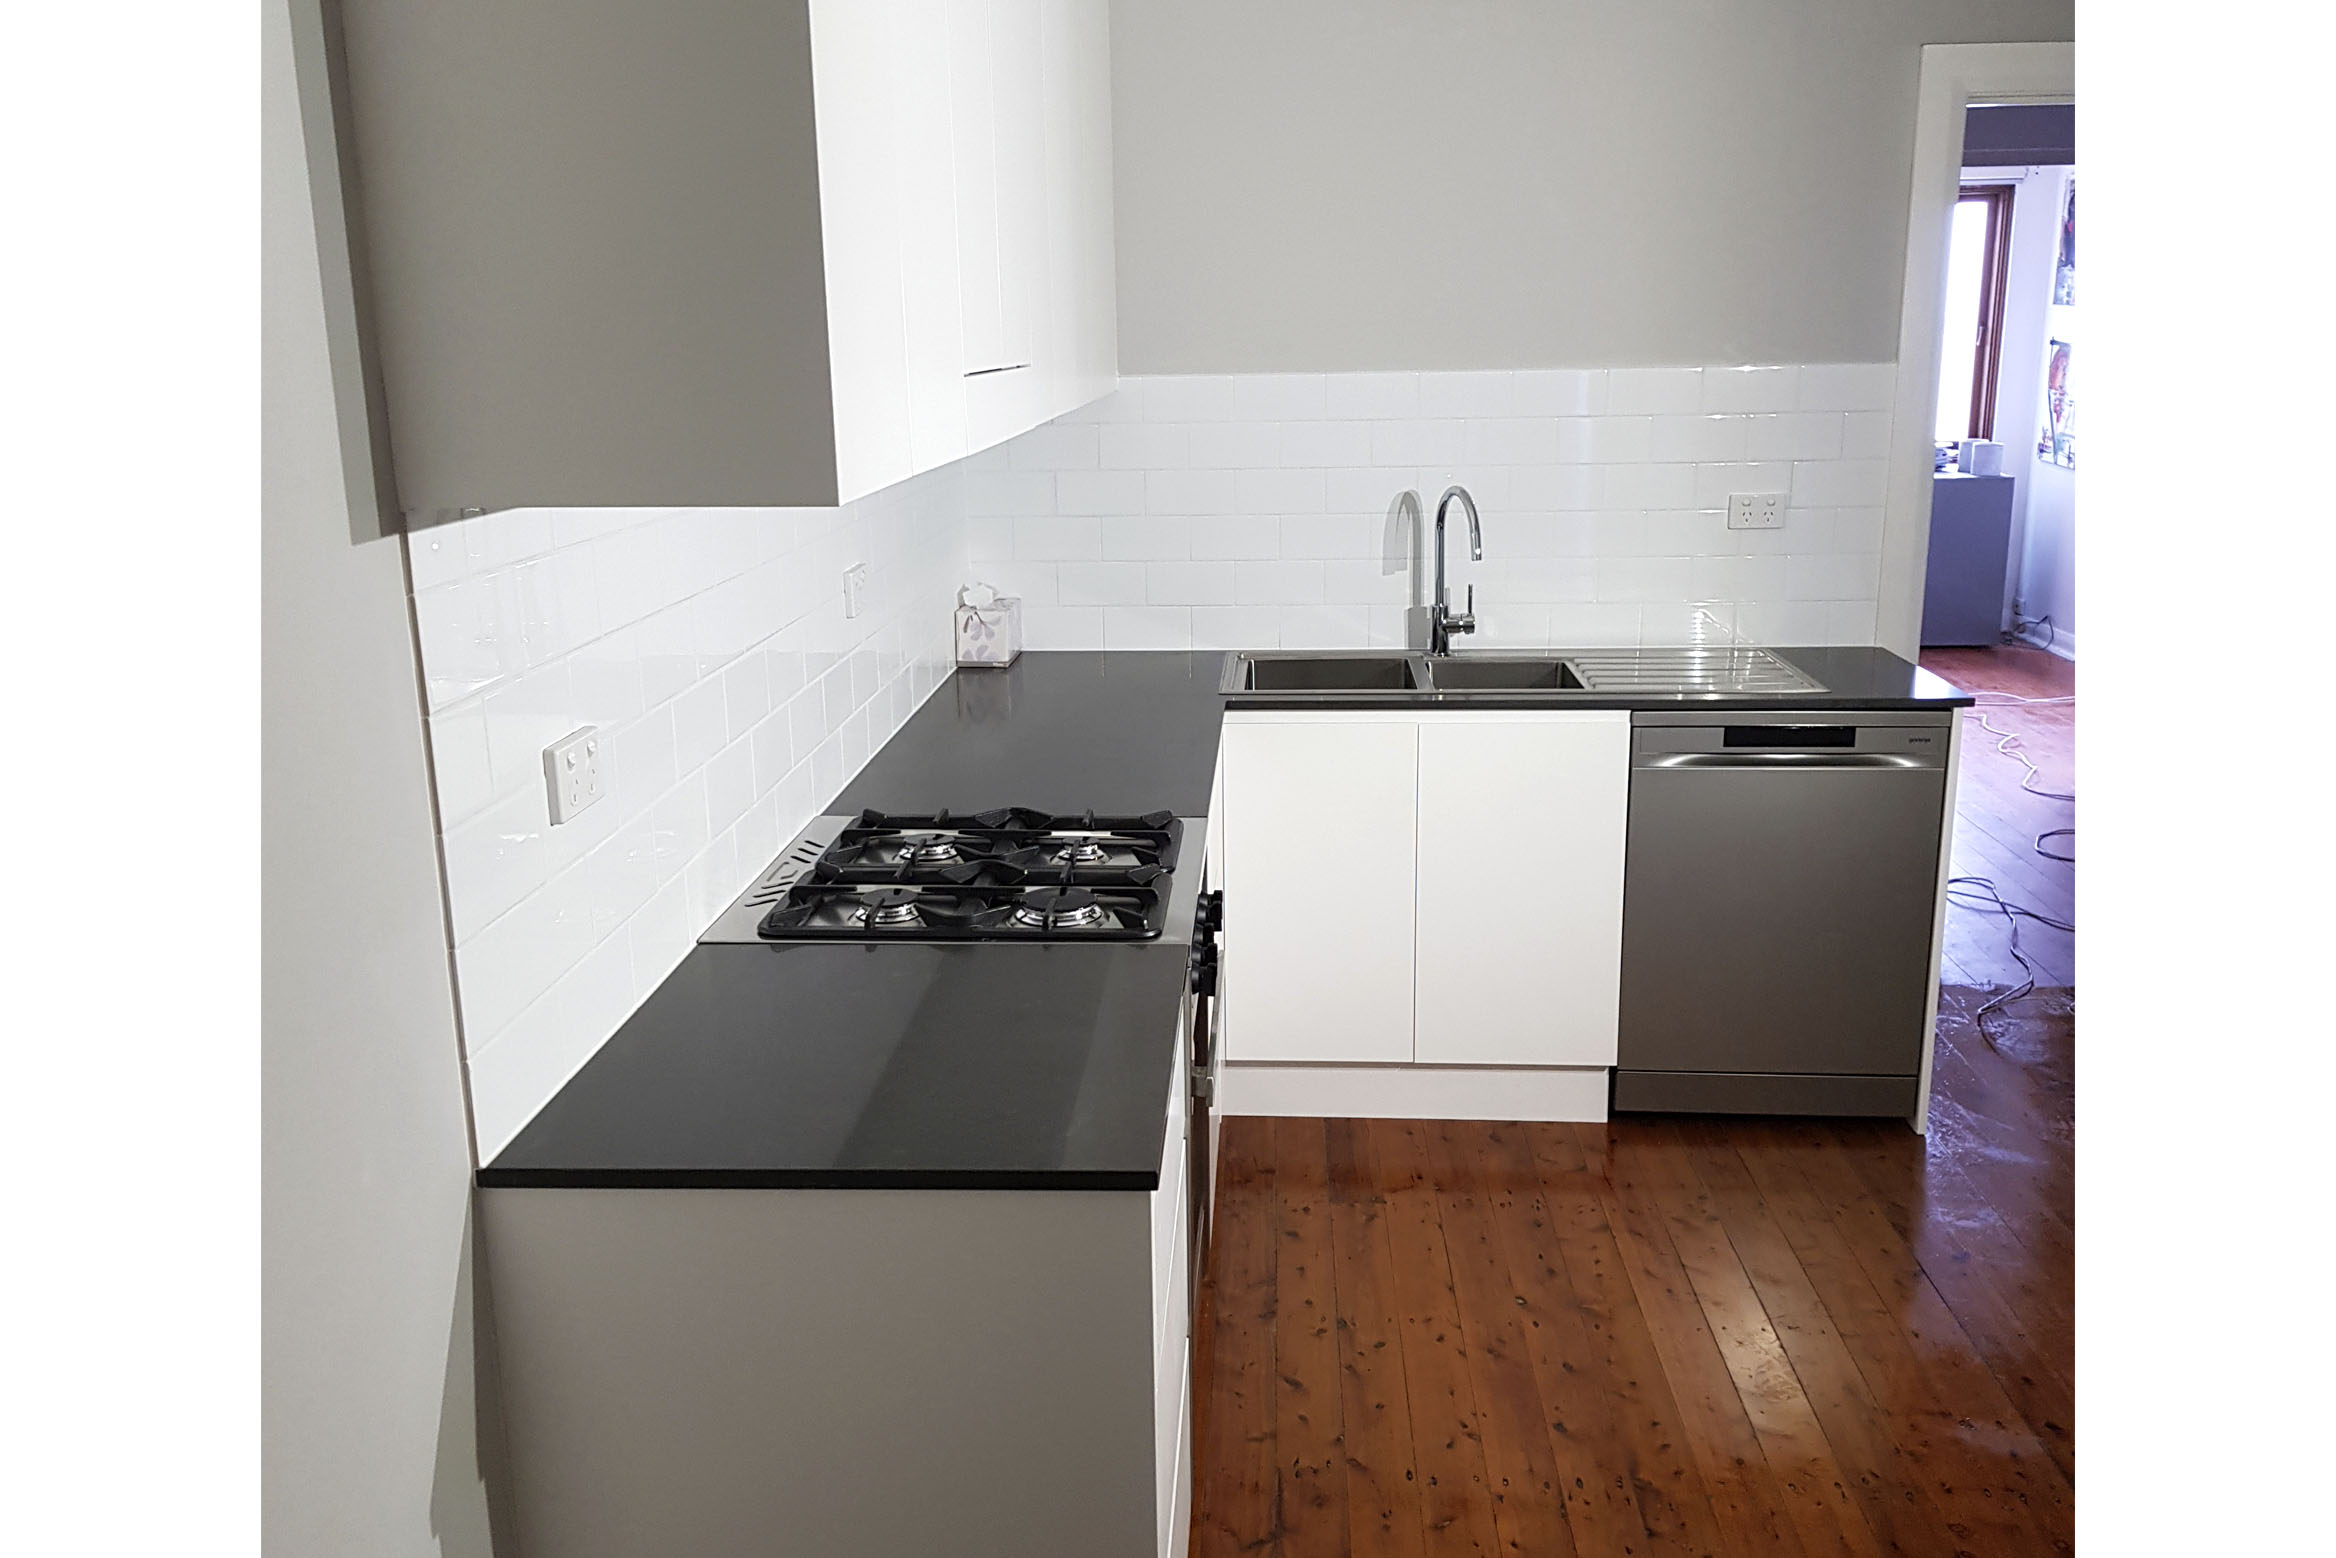 City-Kitchens_Sydney_New-Kitchen_VAUCLUSE-3_09A.jpg